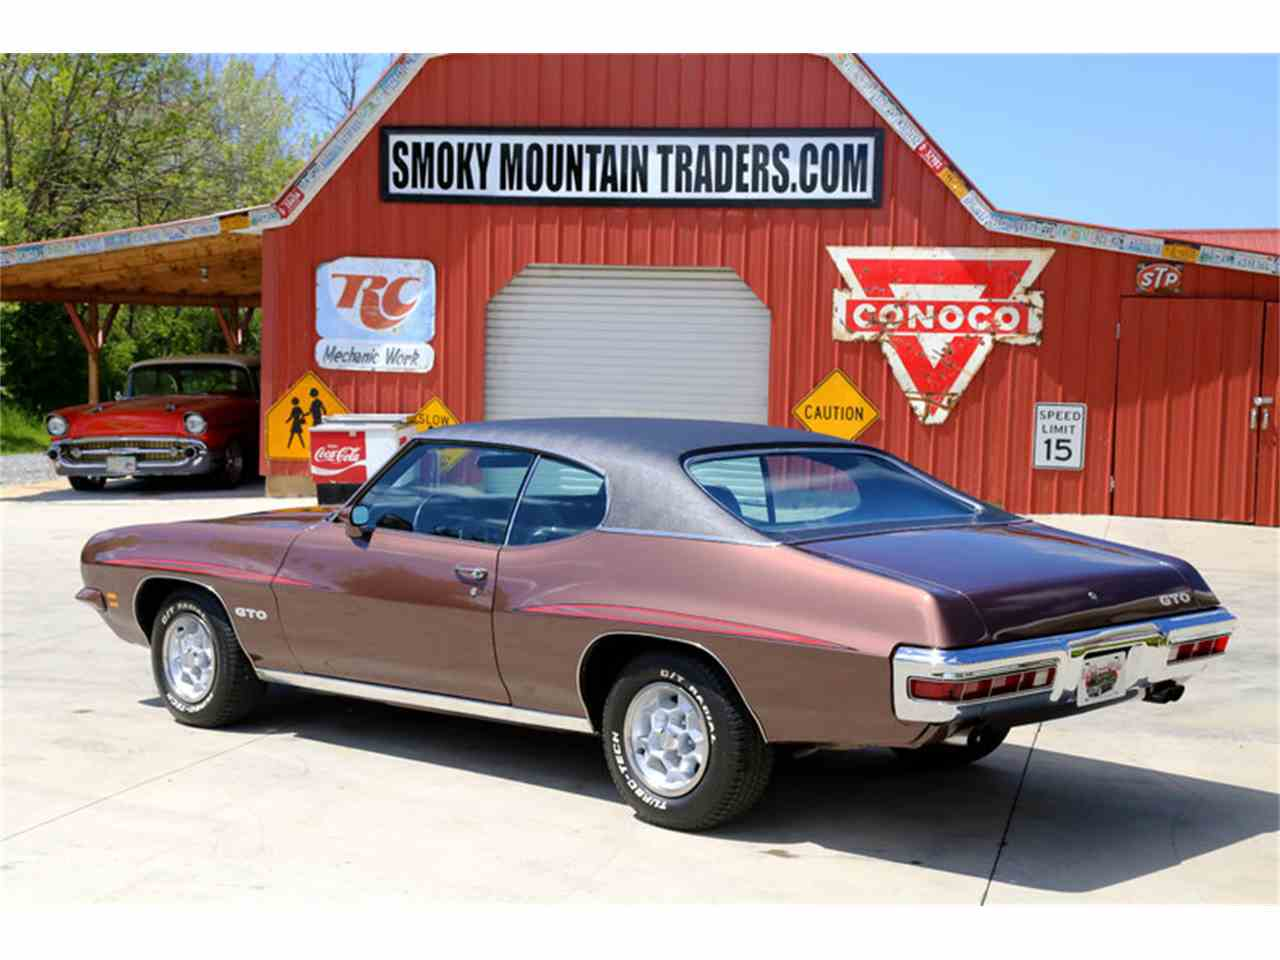 Large Picture of '71 Pontiac GTO - $36,995.00 - HKO3